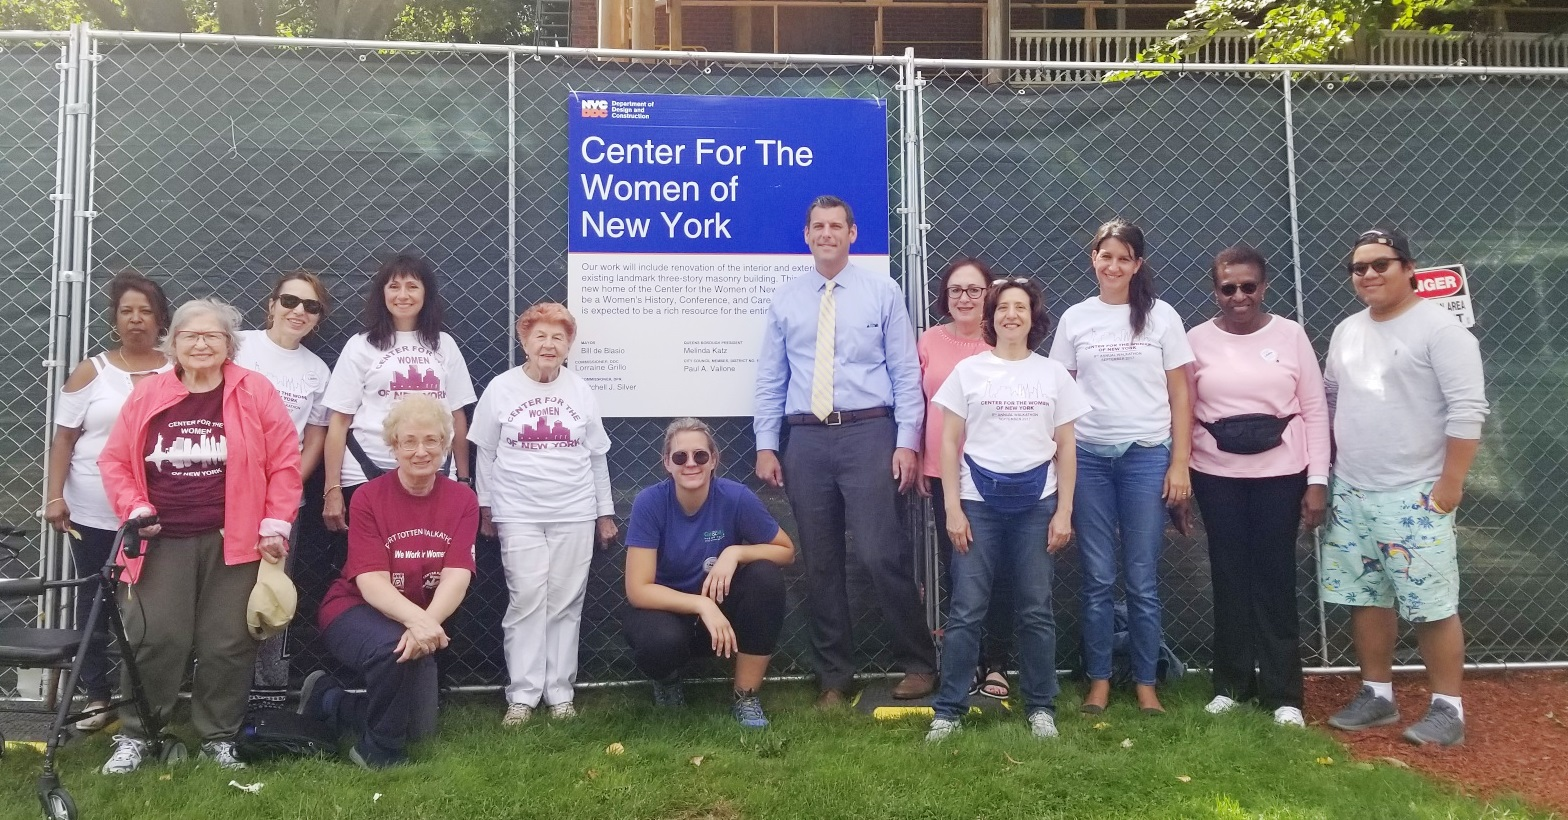 On September 22, 2018, Assemblyman Braunstein attended the Center for the Women of New York's 10th Annual Fort Totten Walkathon.